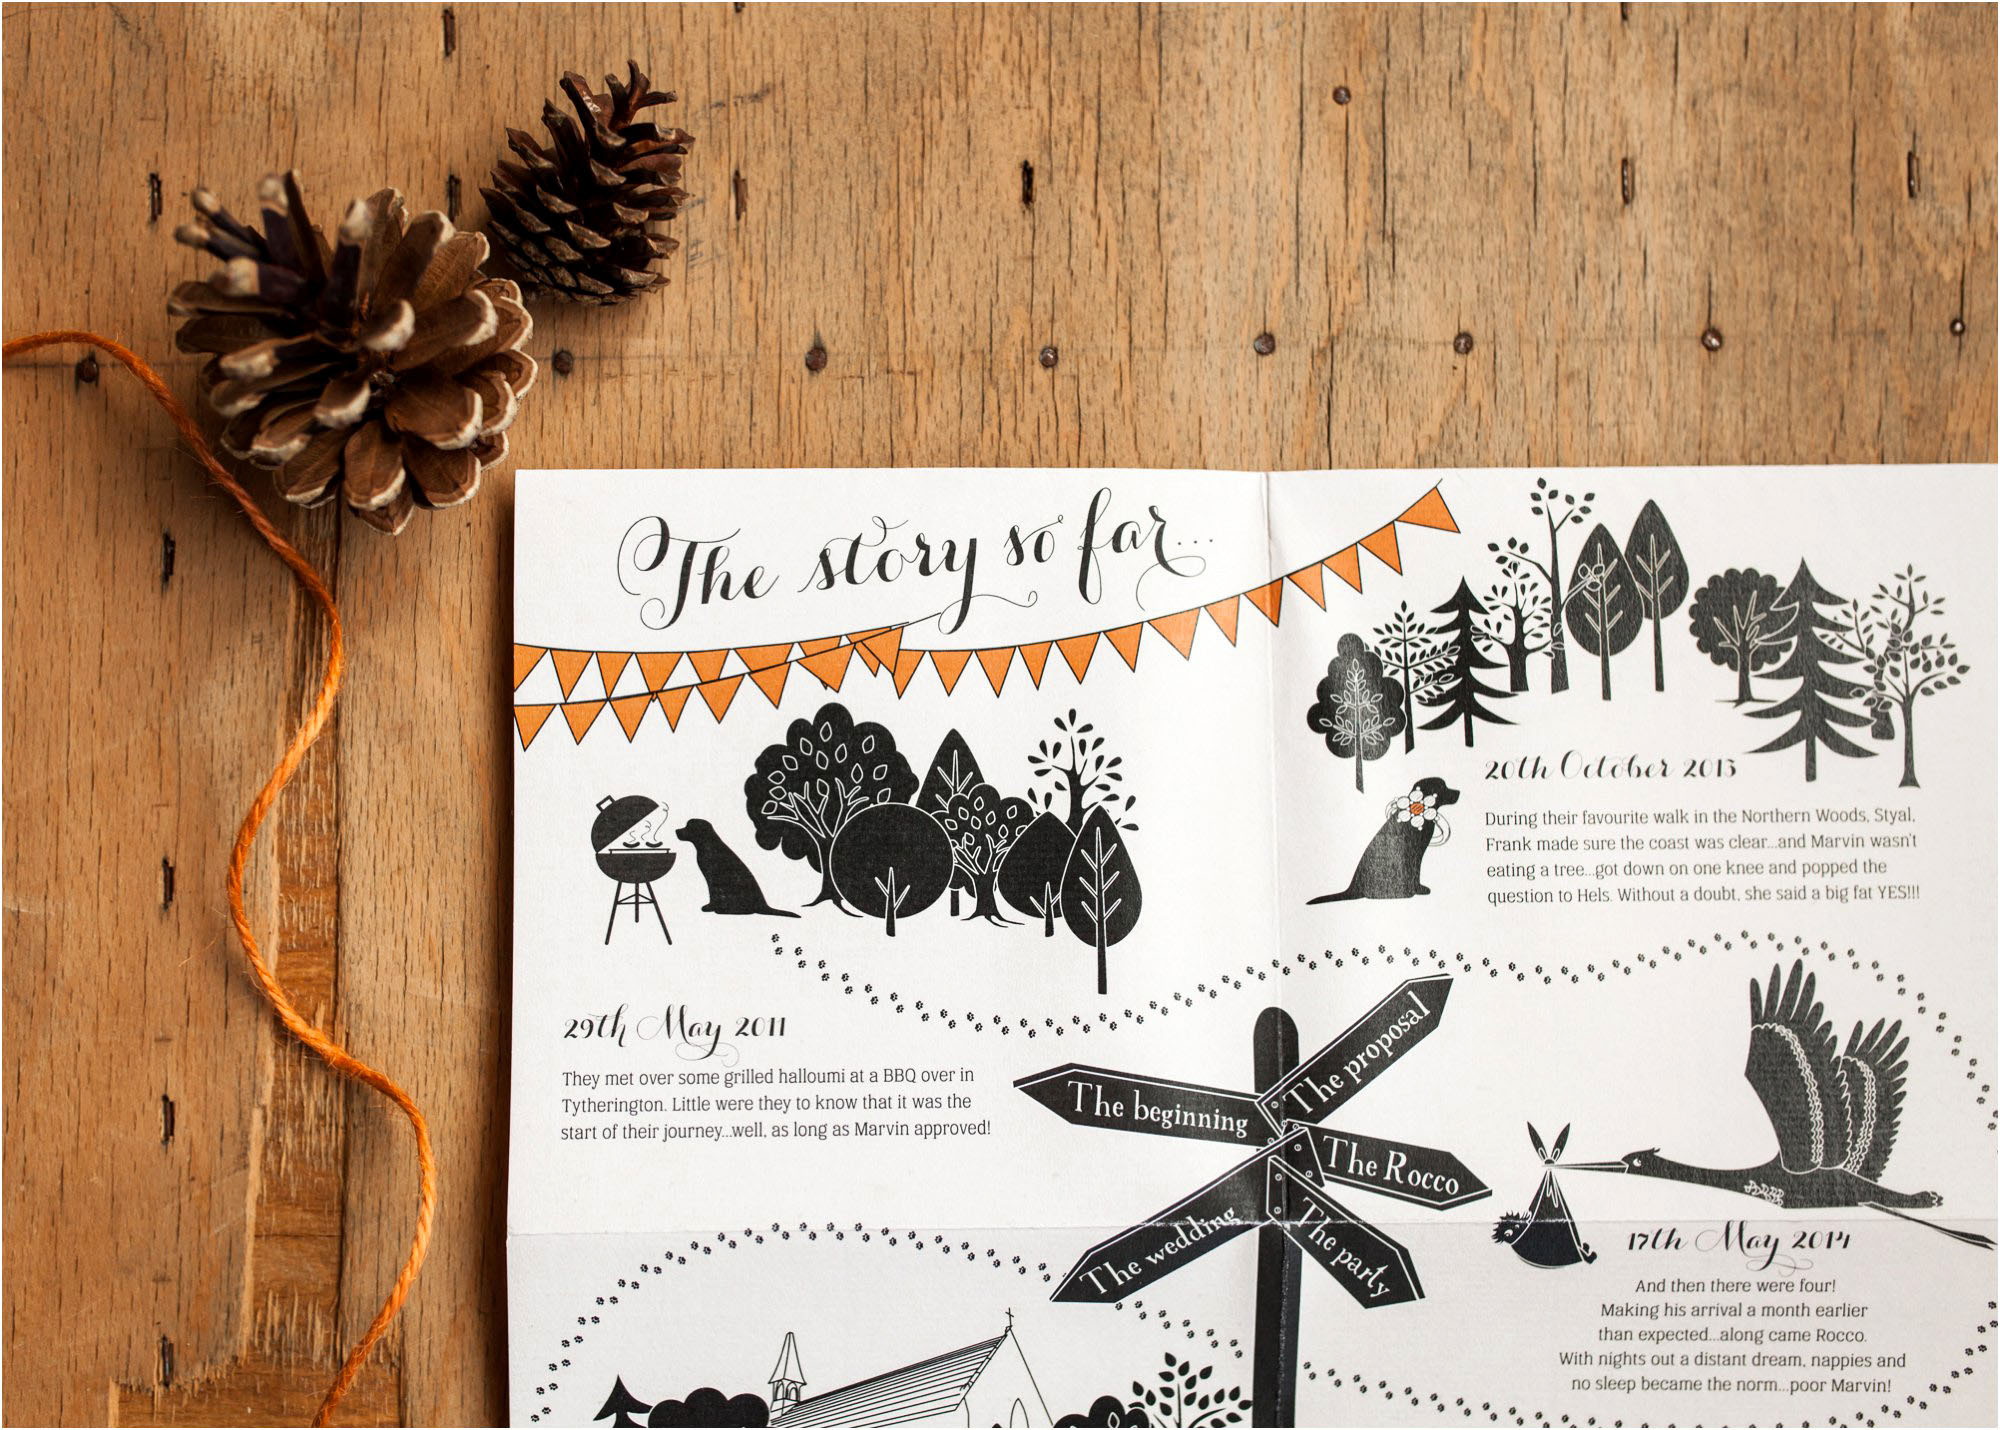 Styal_Wedding_stationery_chocolate_labrador_dog_Wilmslow_Cheshire_Autumn_Colourful_photography_0135.jpg